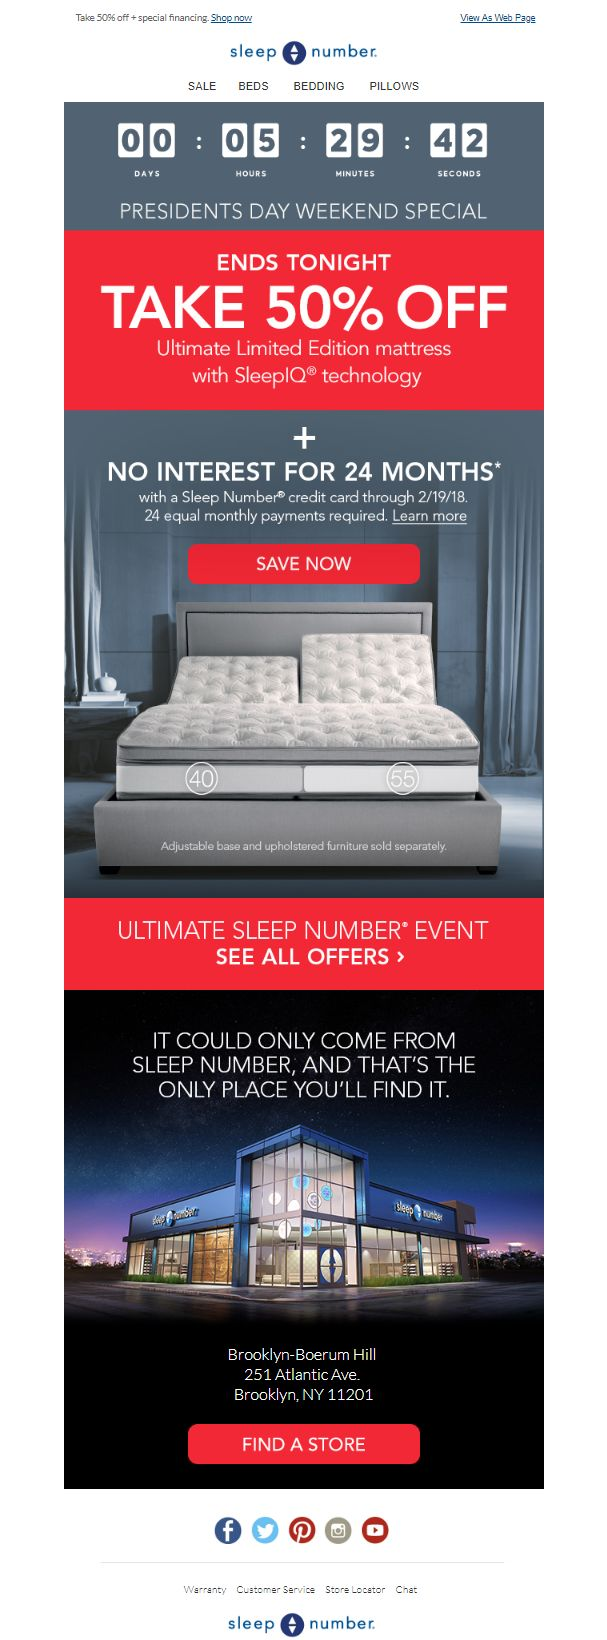 SleepNumber, Email Marketing, Countdown Timers, Personalized Images, Email Examples, Real Time Content, Live Social Feeds, Dynamic Emails